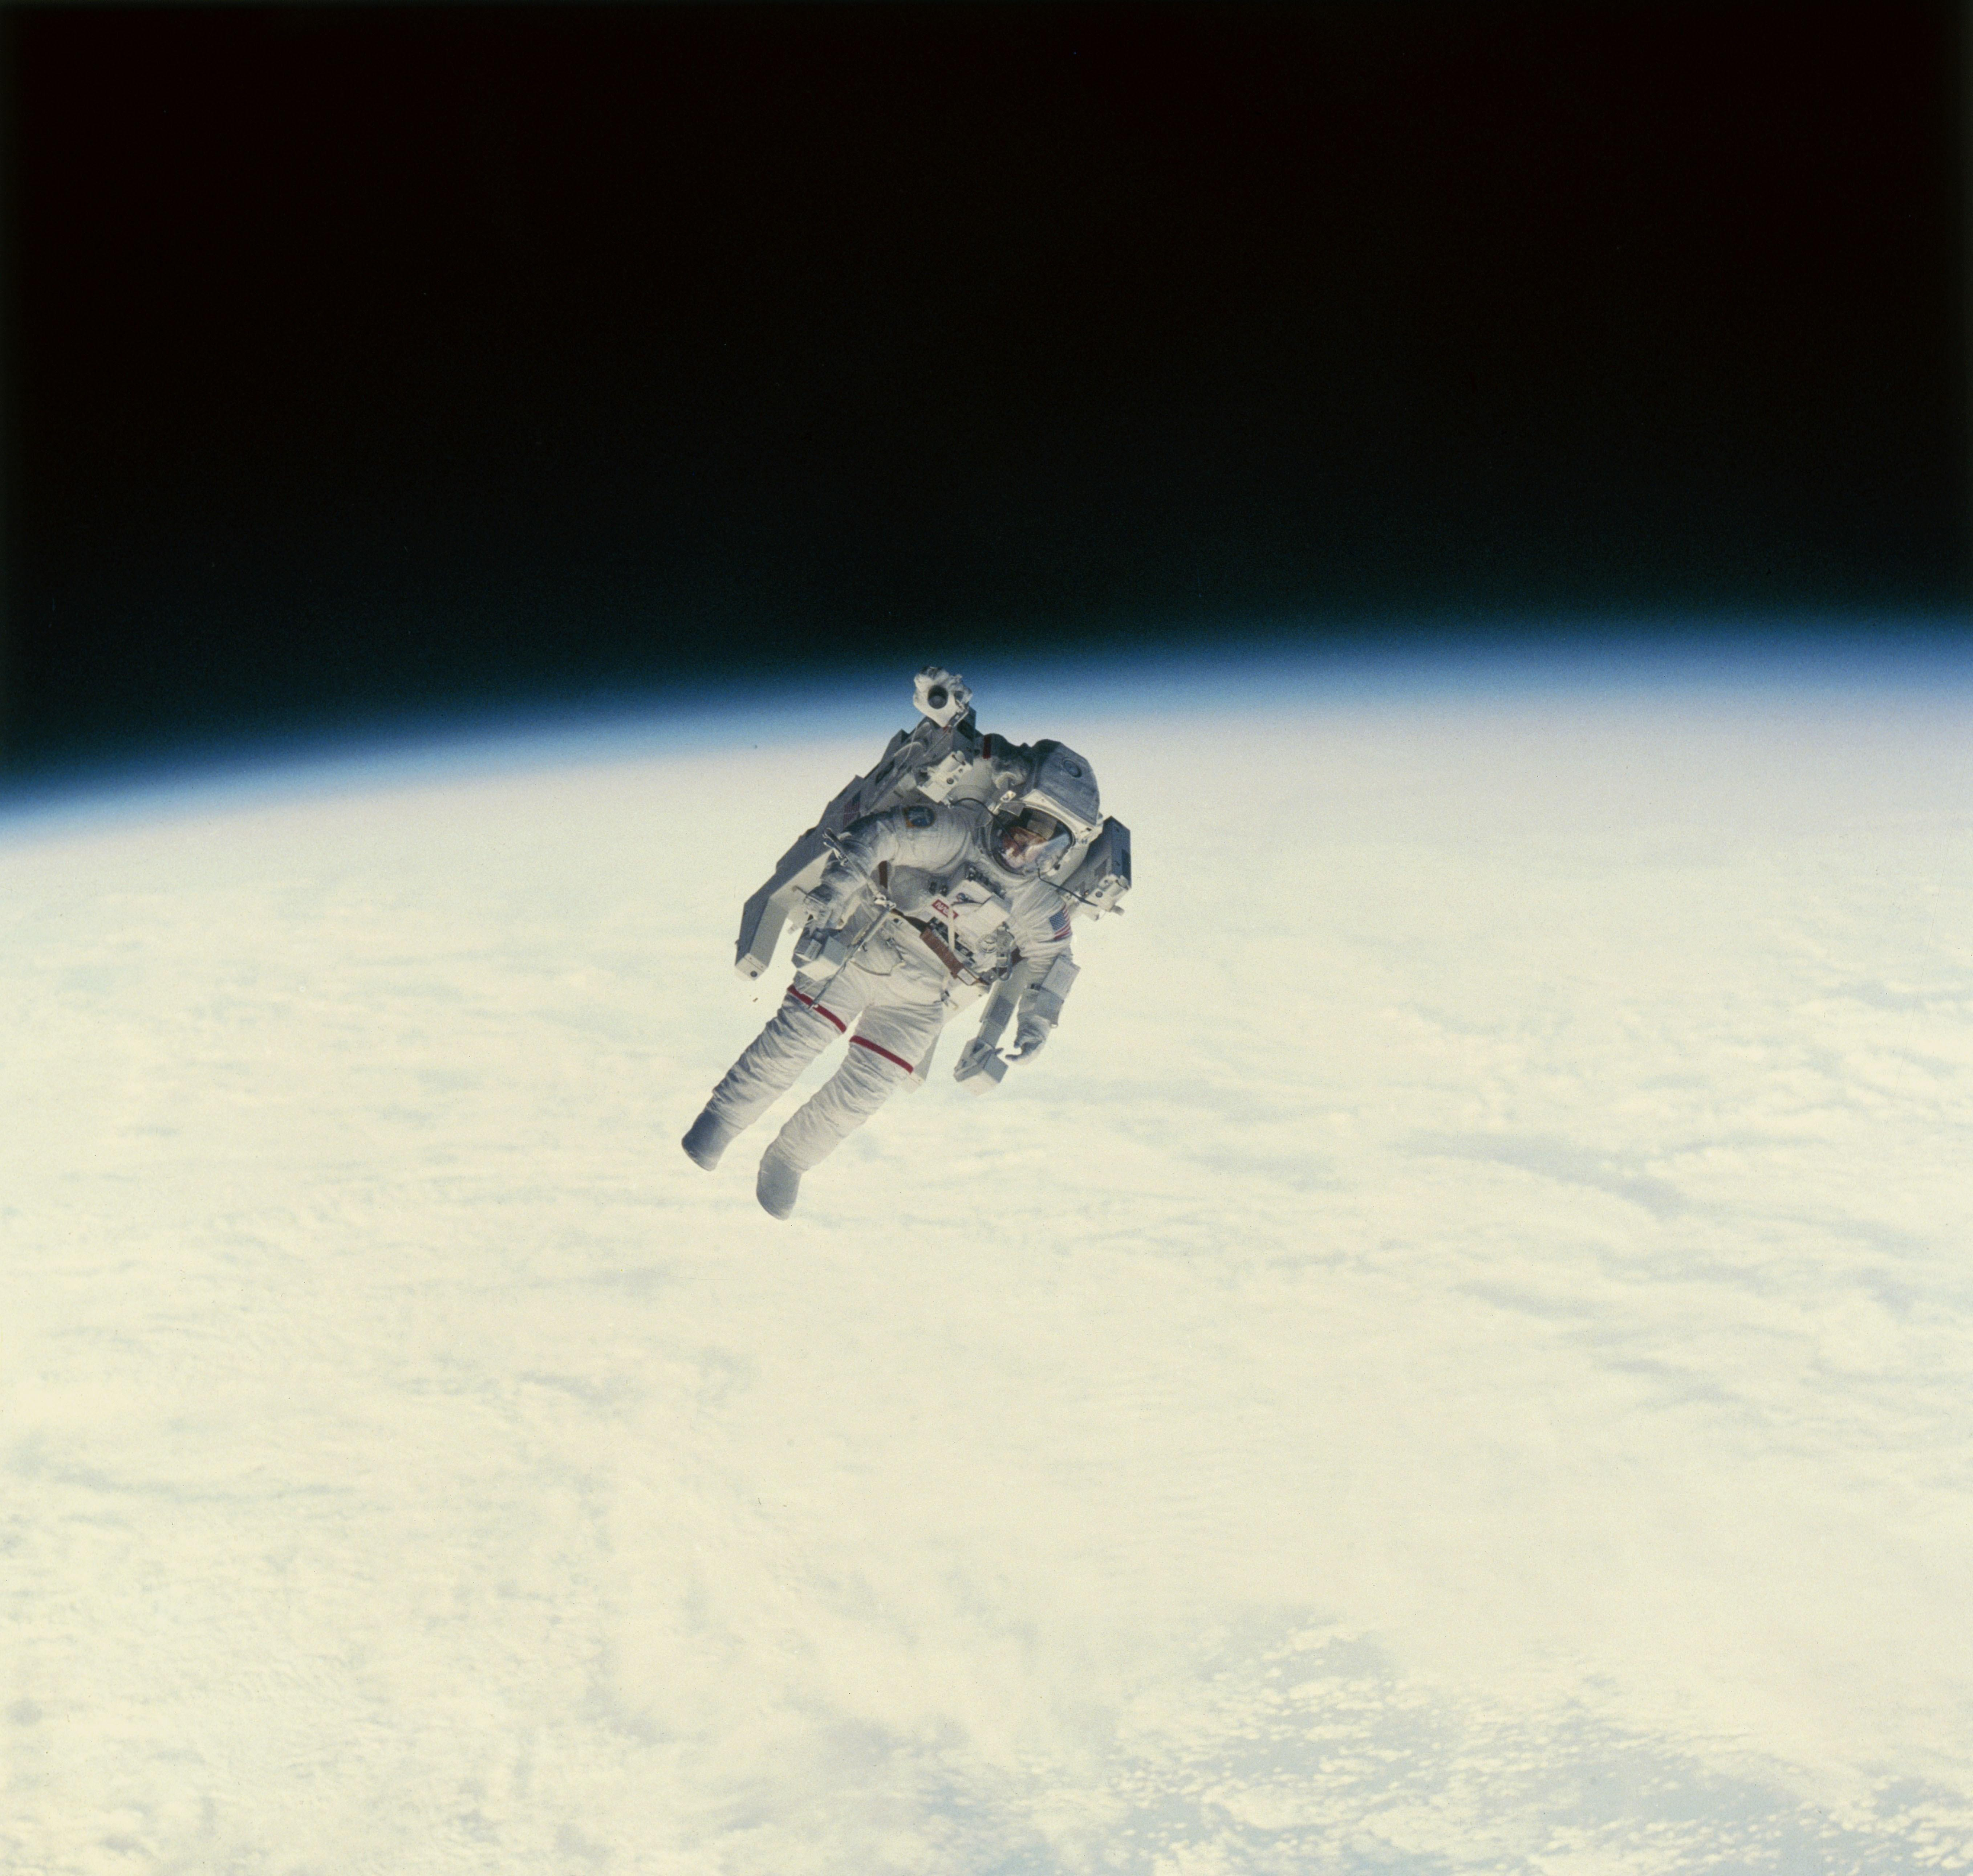 Bruce McCandless II During An Extravehicular Activity On February 7, 1984. For The First Time, An Astronaut Uses The Manned Maneuvering Unit (MMU) During A Spacewalk. His Movement Is Propelled By Gaseous Nitrogen And Controlled By His Hands.Кредит: